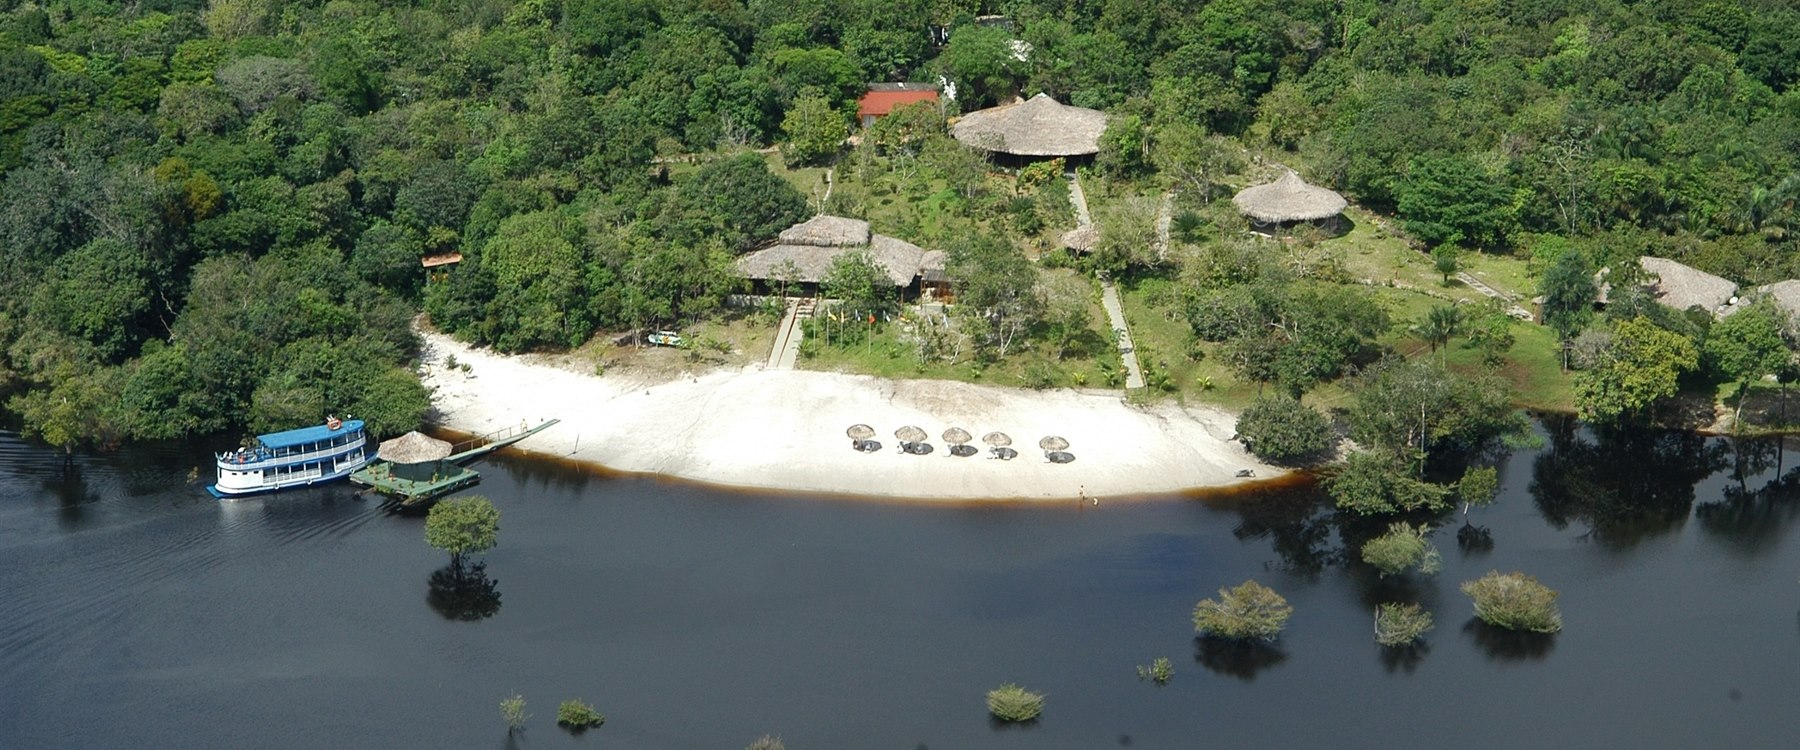 Aerial view of Amazon Eco Park Jungle Lodge, Brazil